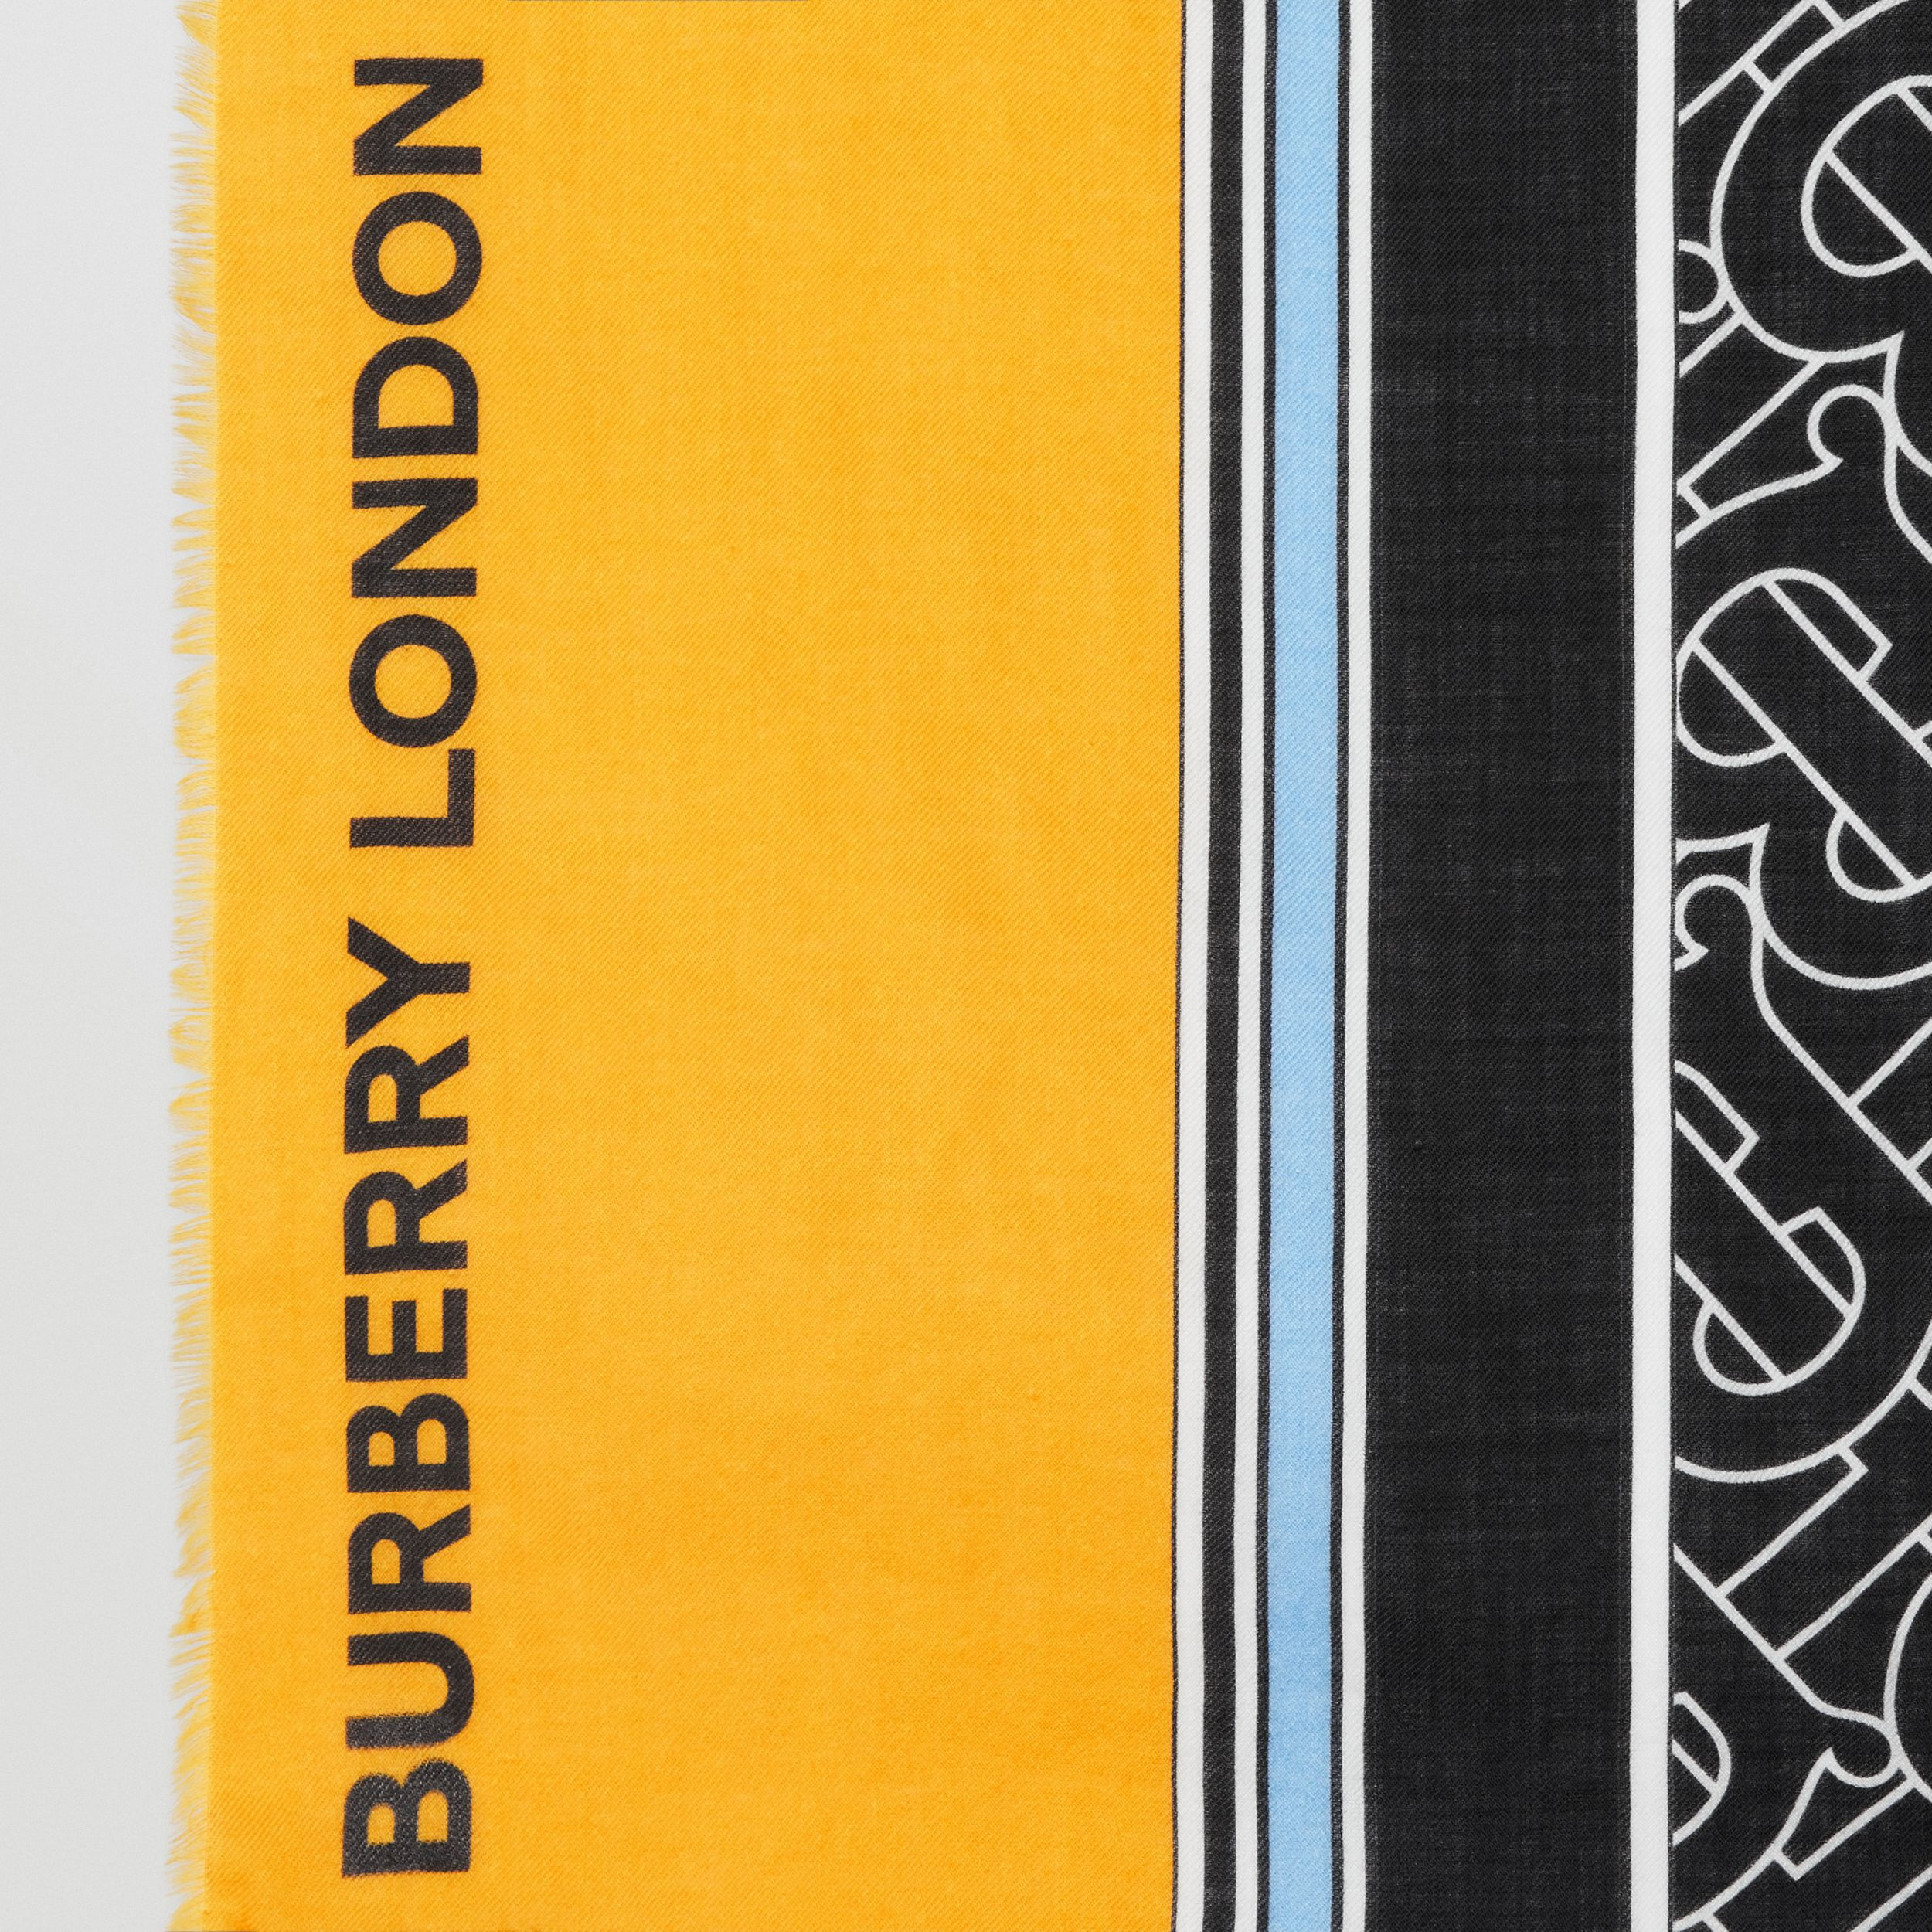 Monogram Print Striped Lightweight Cashmere Scarf in Citrus Yellow | Burberry United Kingdom - 2